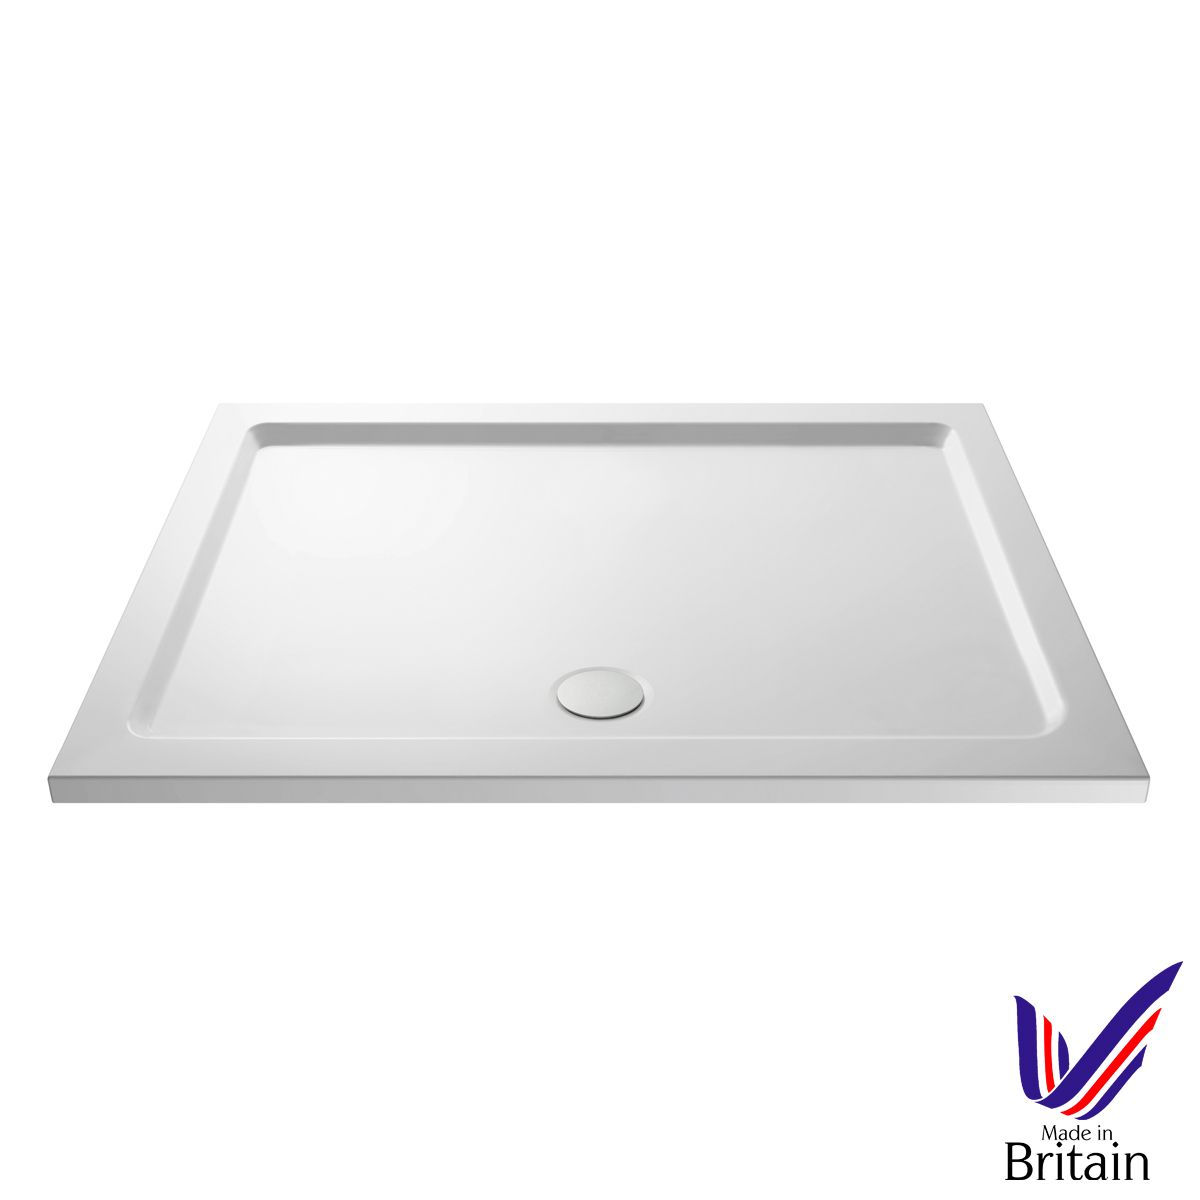 1500 x 700 Shower Tray Rectangular Low Profile by Pearlstone